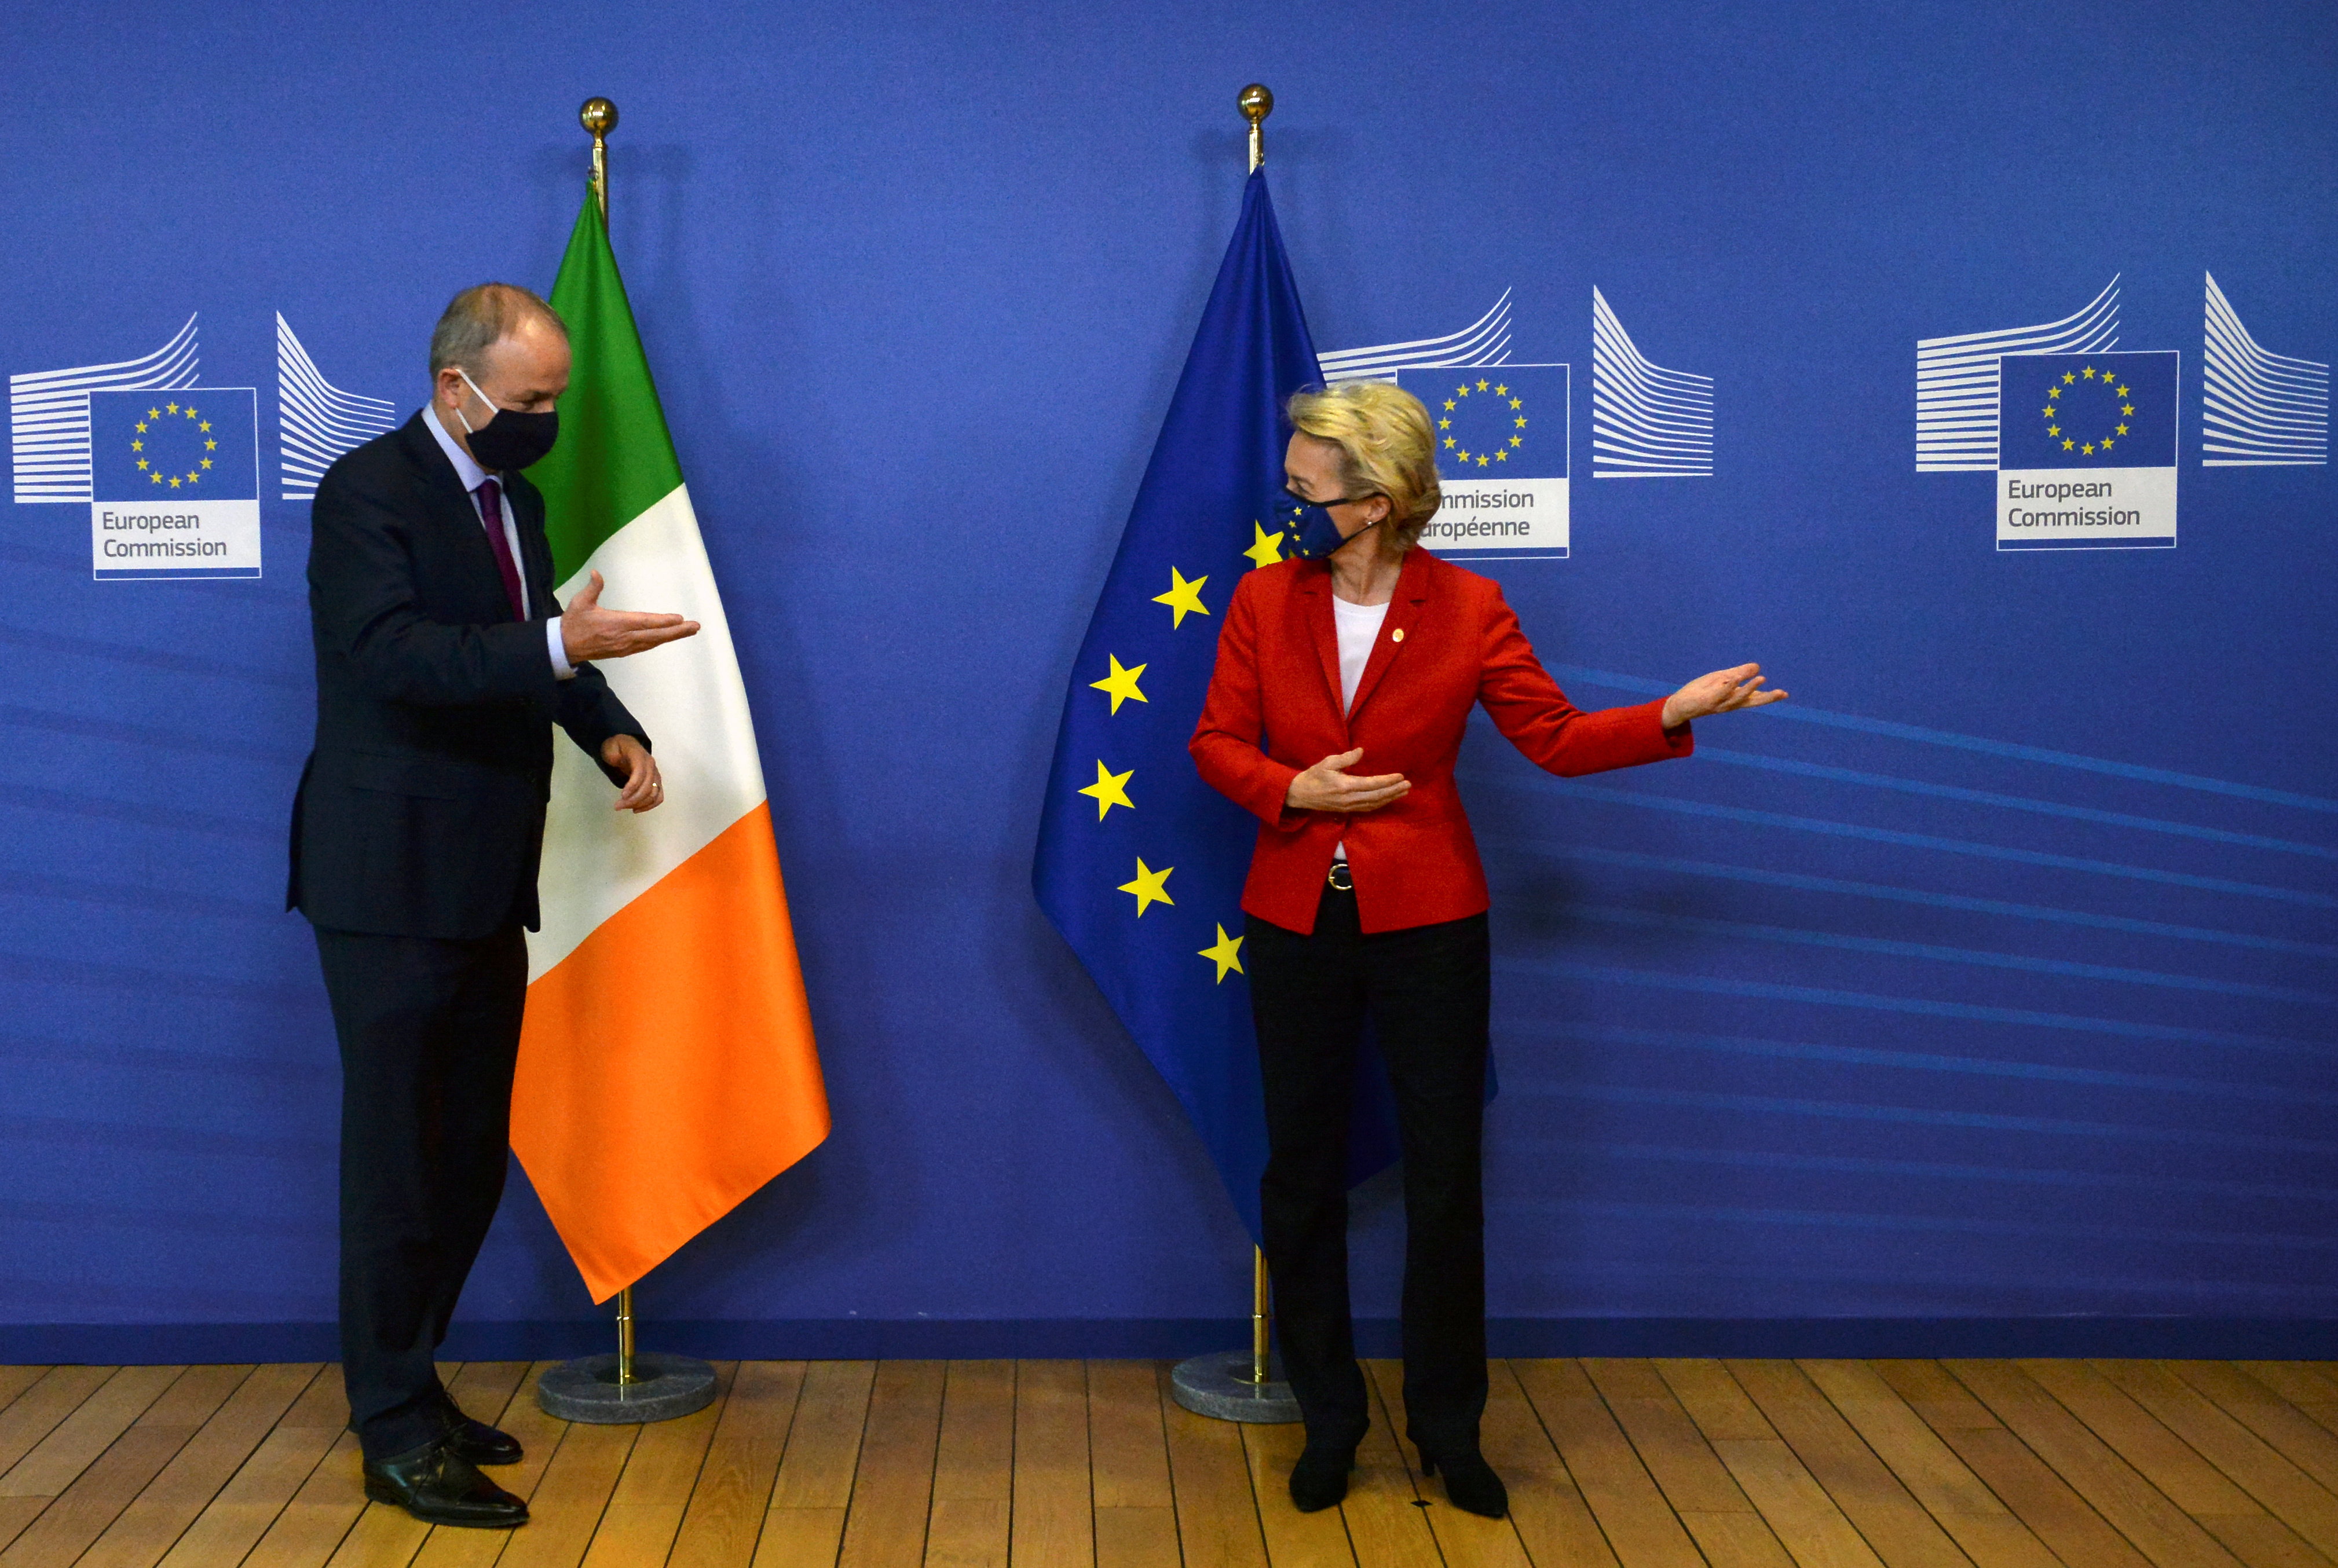 Shaping Ireland's future at home and in the world